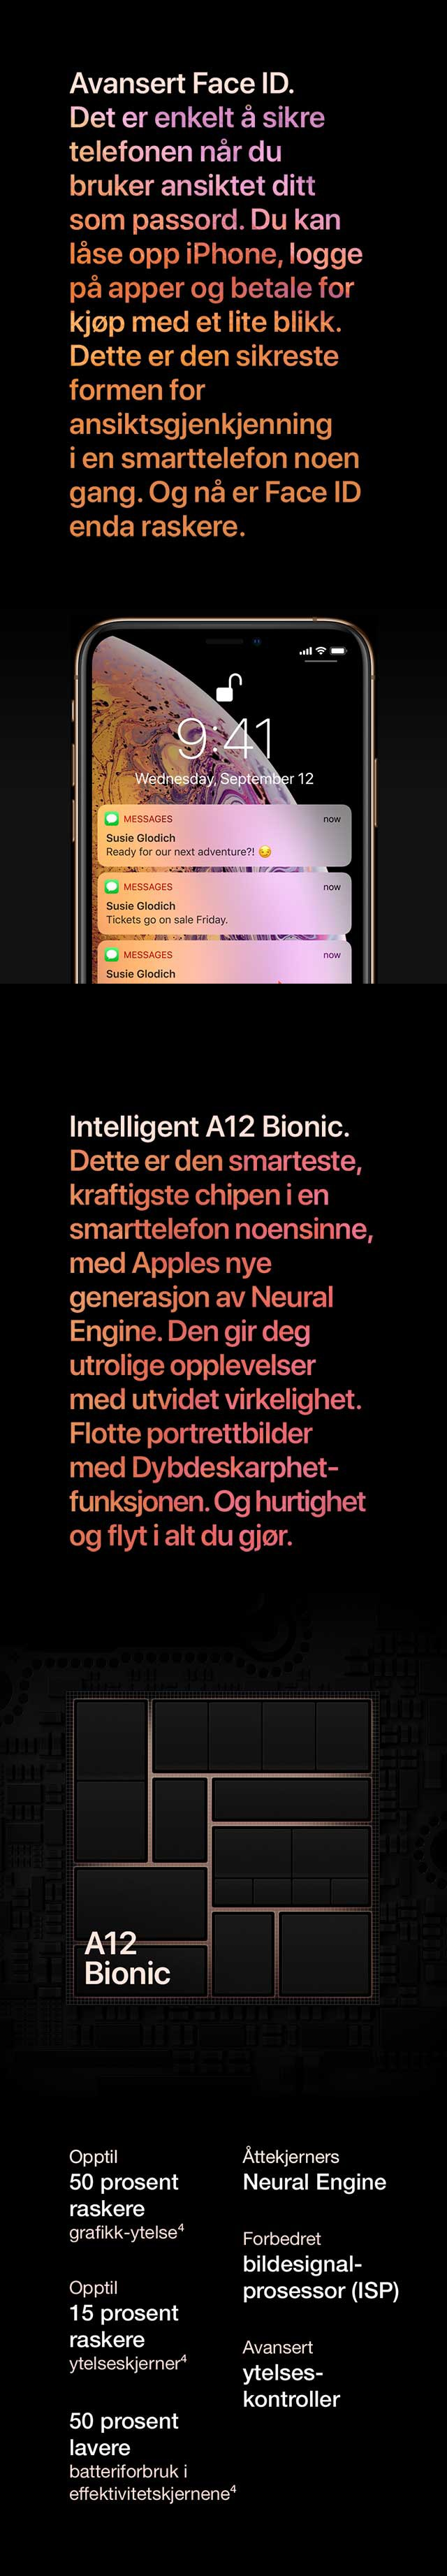 iPhone XS med avansert Face ID og intelligent A12 Bionic chip